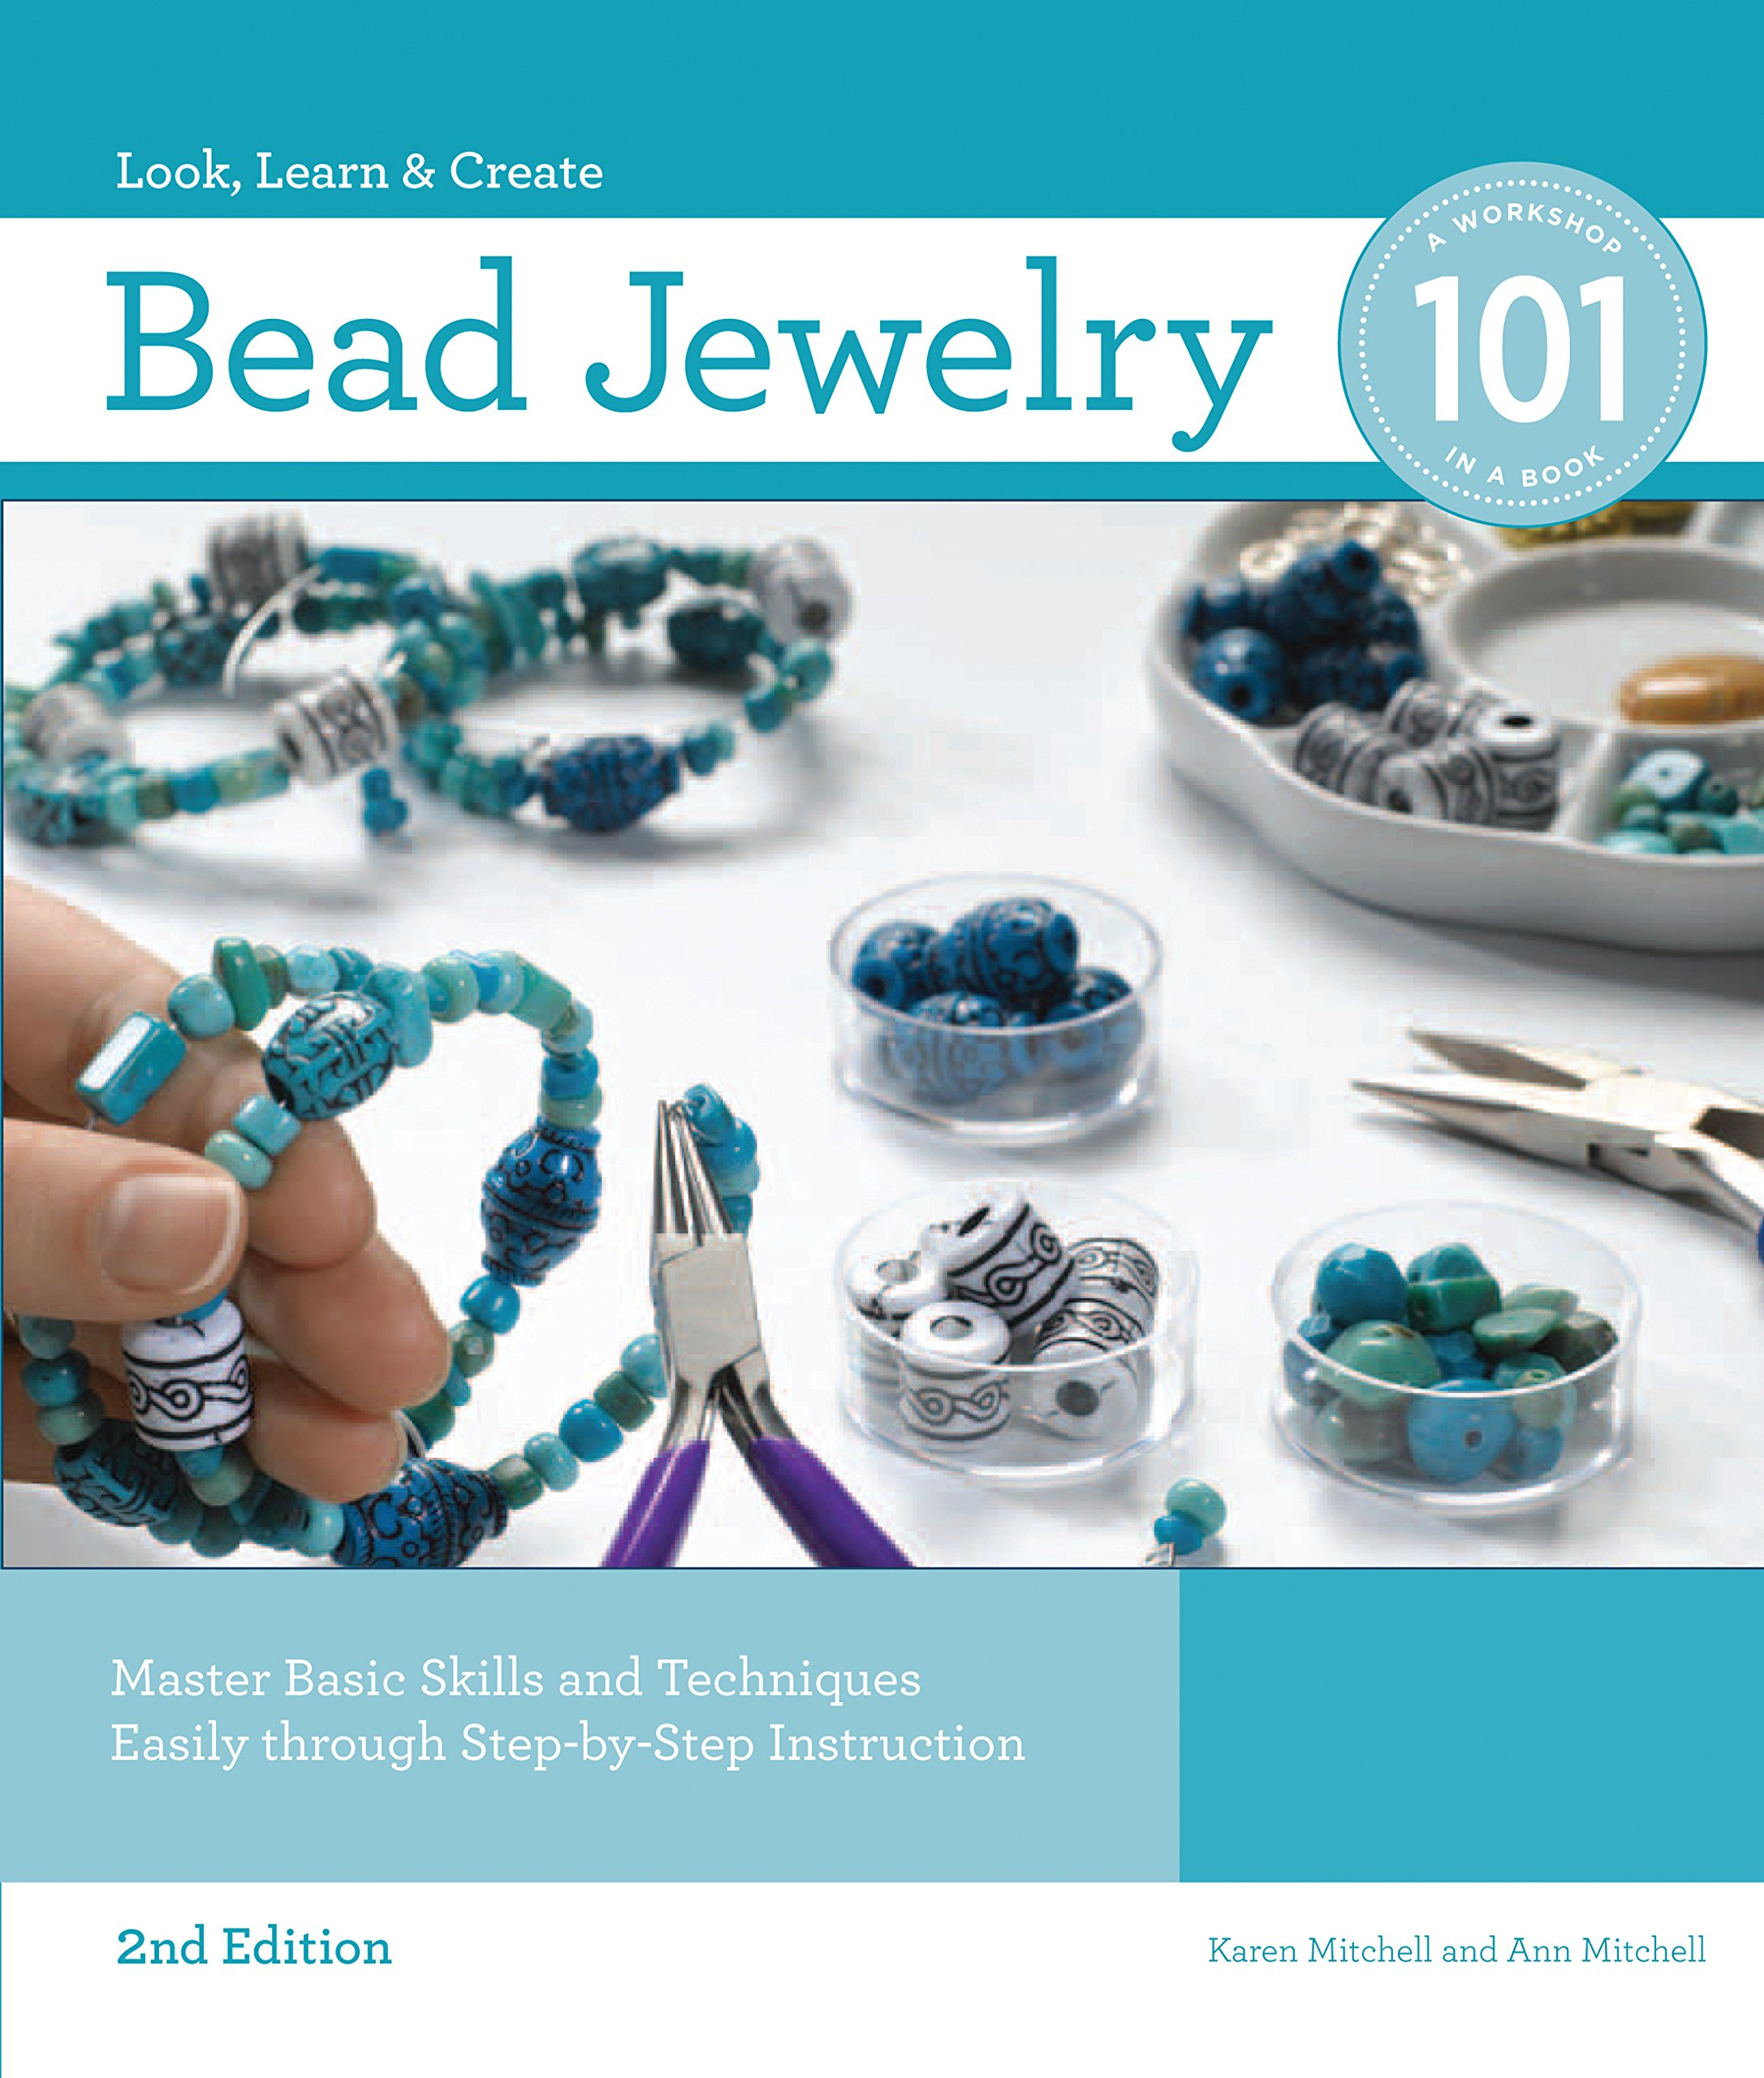 Bead Jewelry 101, 2nd Edition: Master Basic Skills and Techniques Easily through Step-by-Step Instruction by Brand: Creative Publishing international